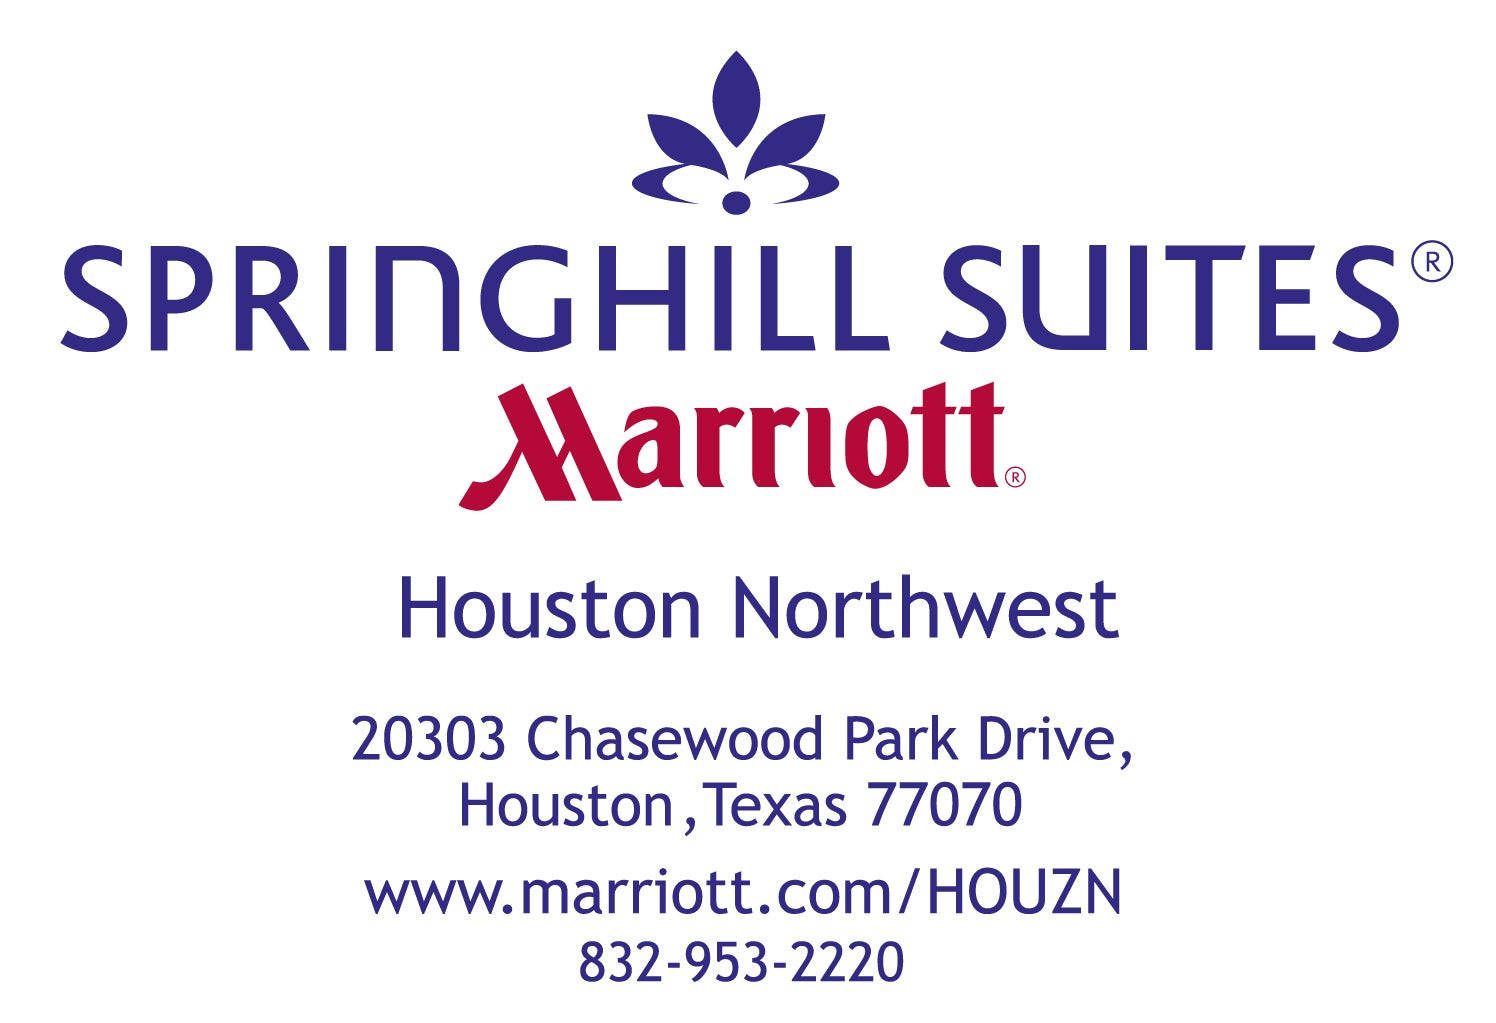 Springhill Suites- Marriott